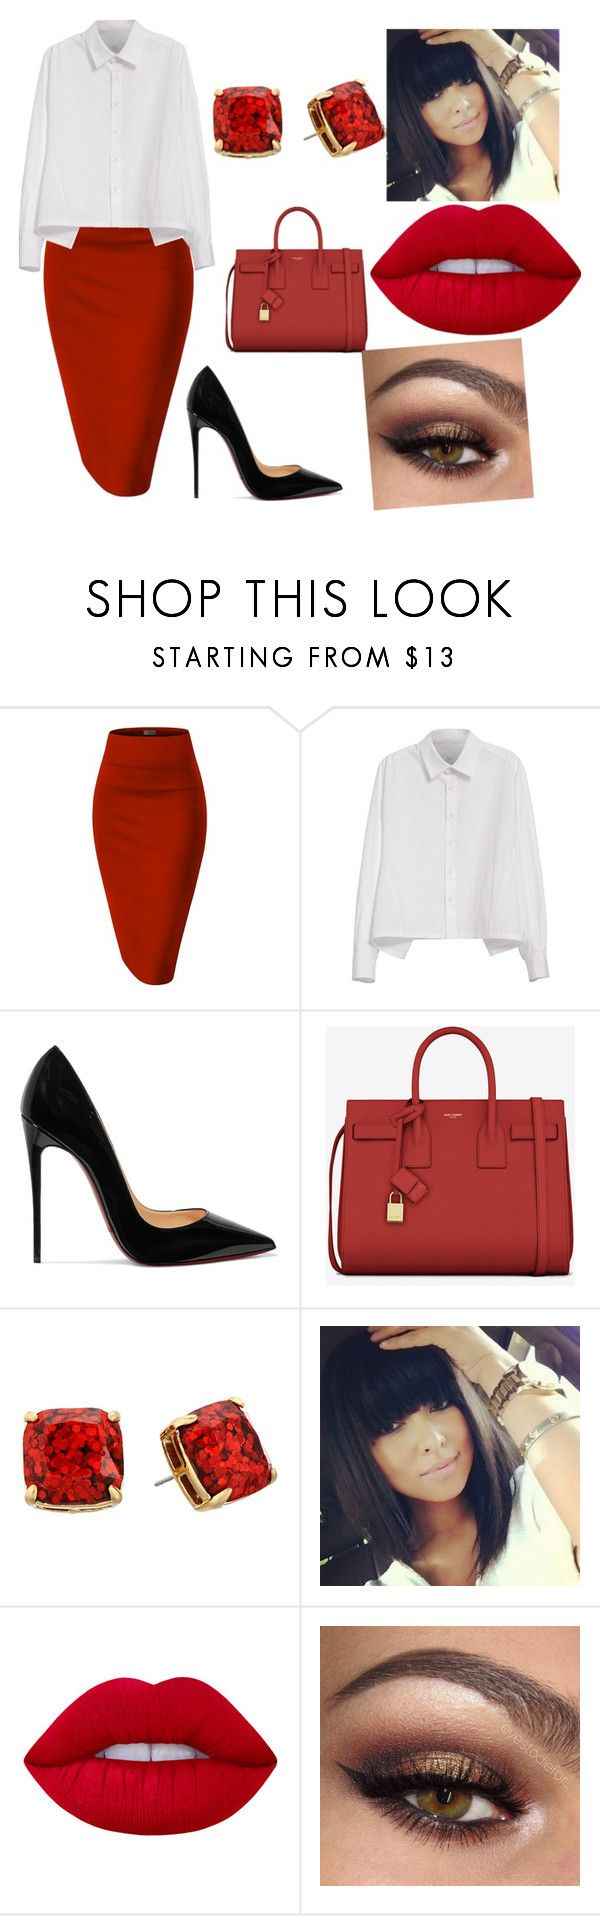 """Untitled #260"" by fashionbykh on Polyvore featuring Whit, Y's by Yohji Yamamoto, Christian Louboutin, Yves Saint Laurent, Kate Spade and Lime Crime"